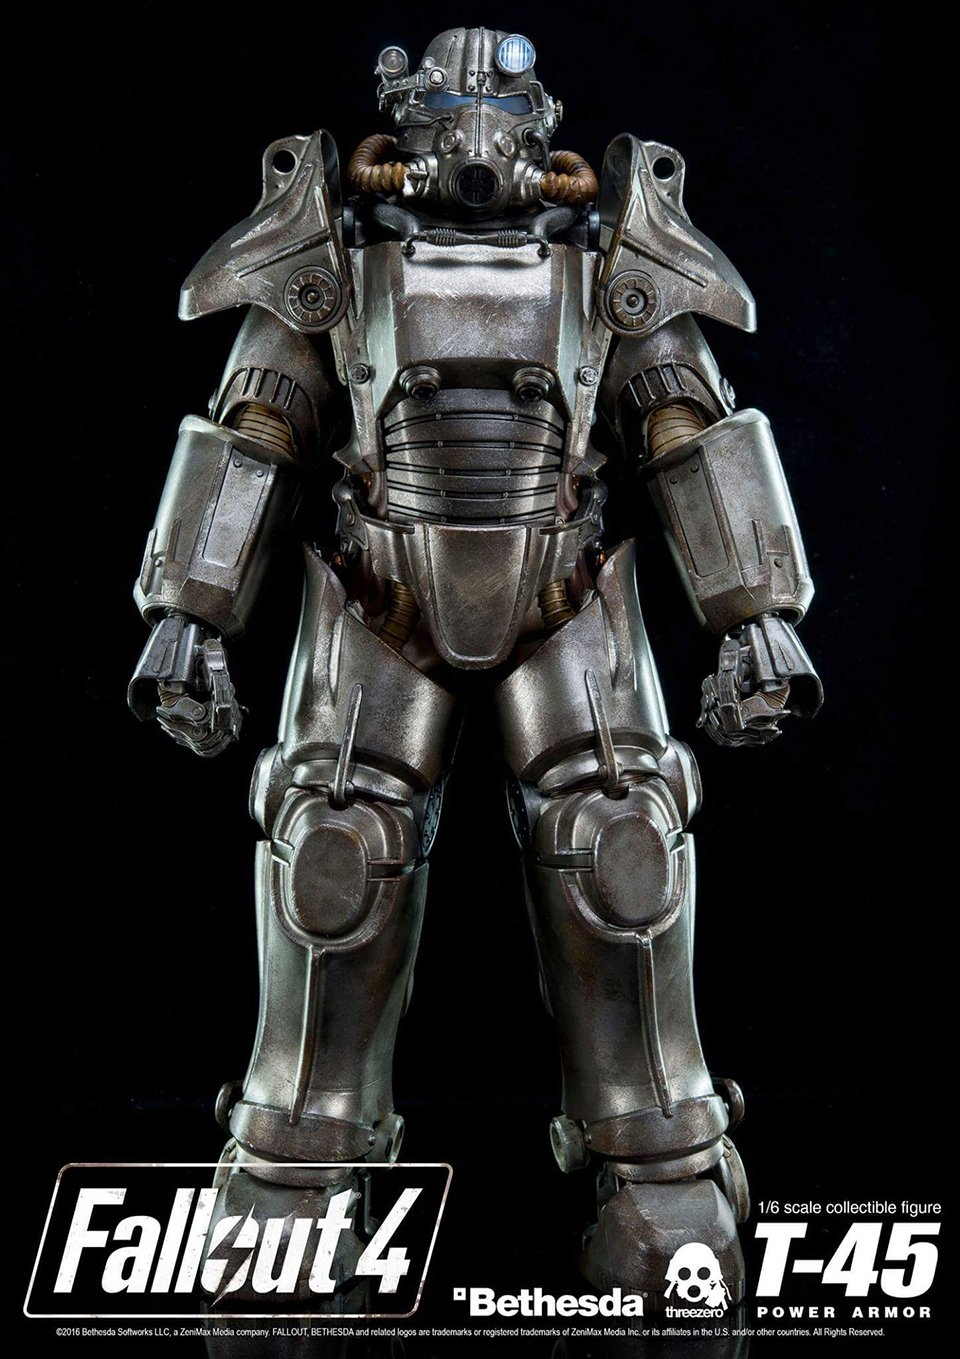 Fallout 4 T-45 Power Armor Action Figure Wants to ...